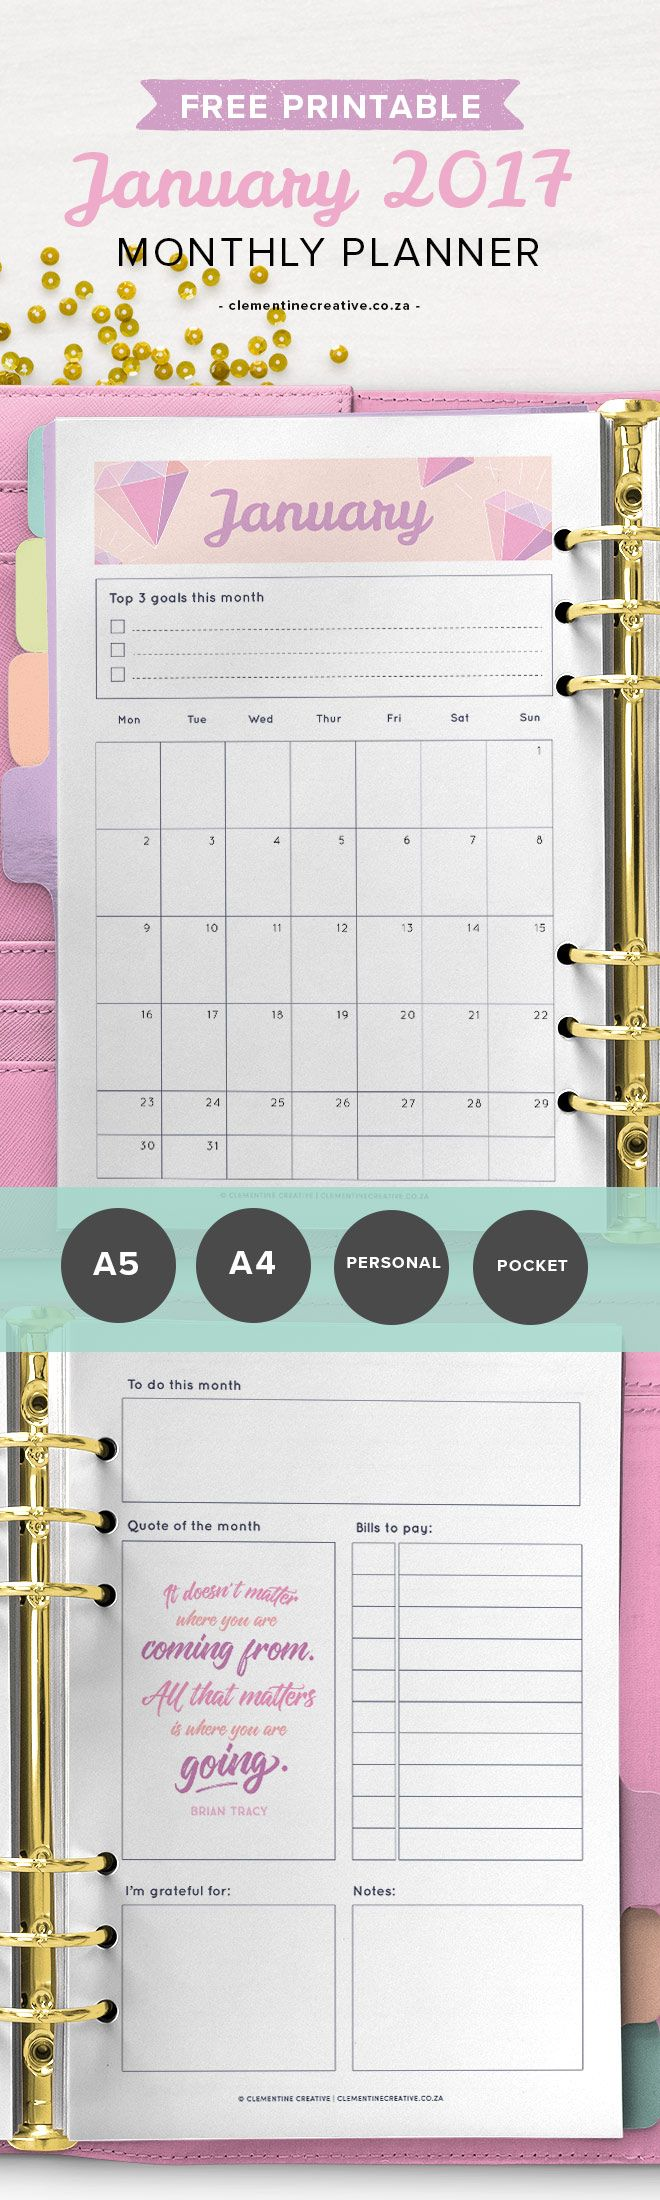 Get a new printable monthly planner template every month! It comes in A4, A5, Personal and Pocket sizes. Perfect for your binder. Download January 2017's monthly planner here.